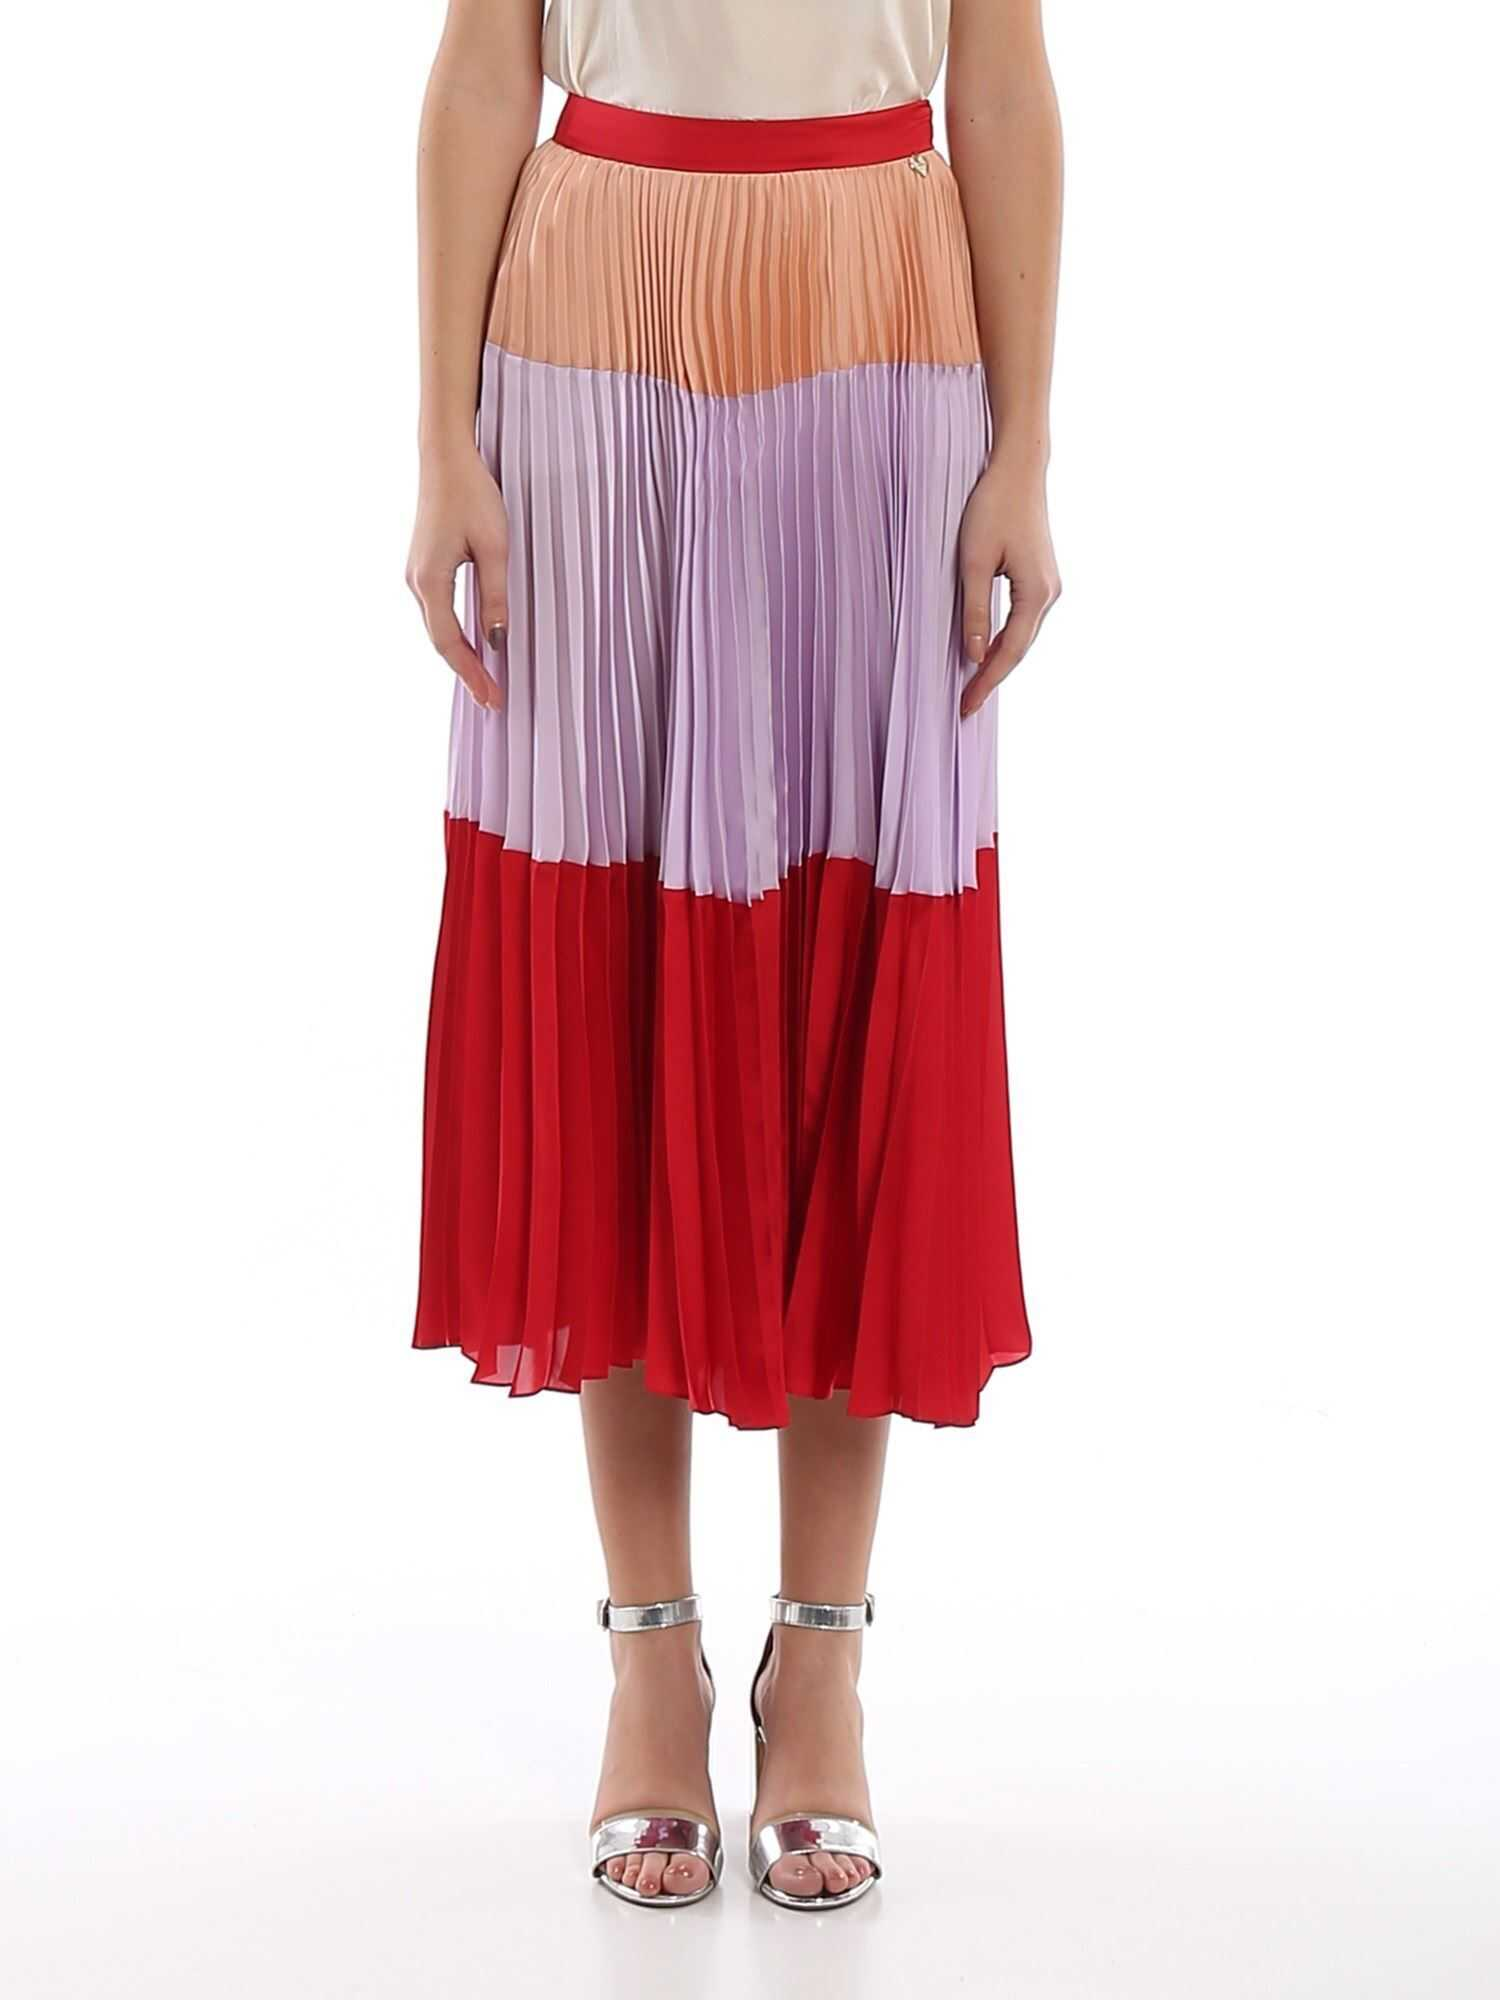 Twin-set Simona Barbieri Colour Block Pleated Satin Skirt Multi